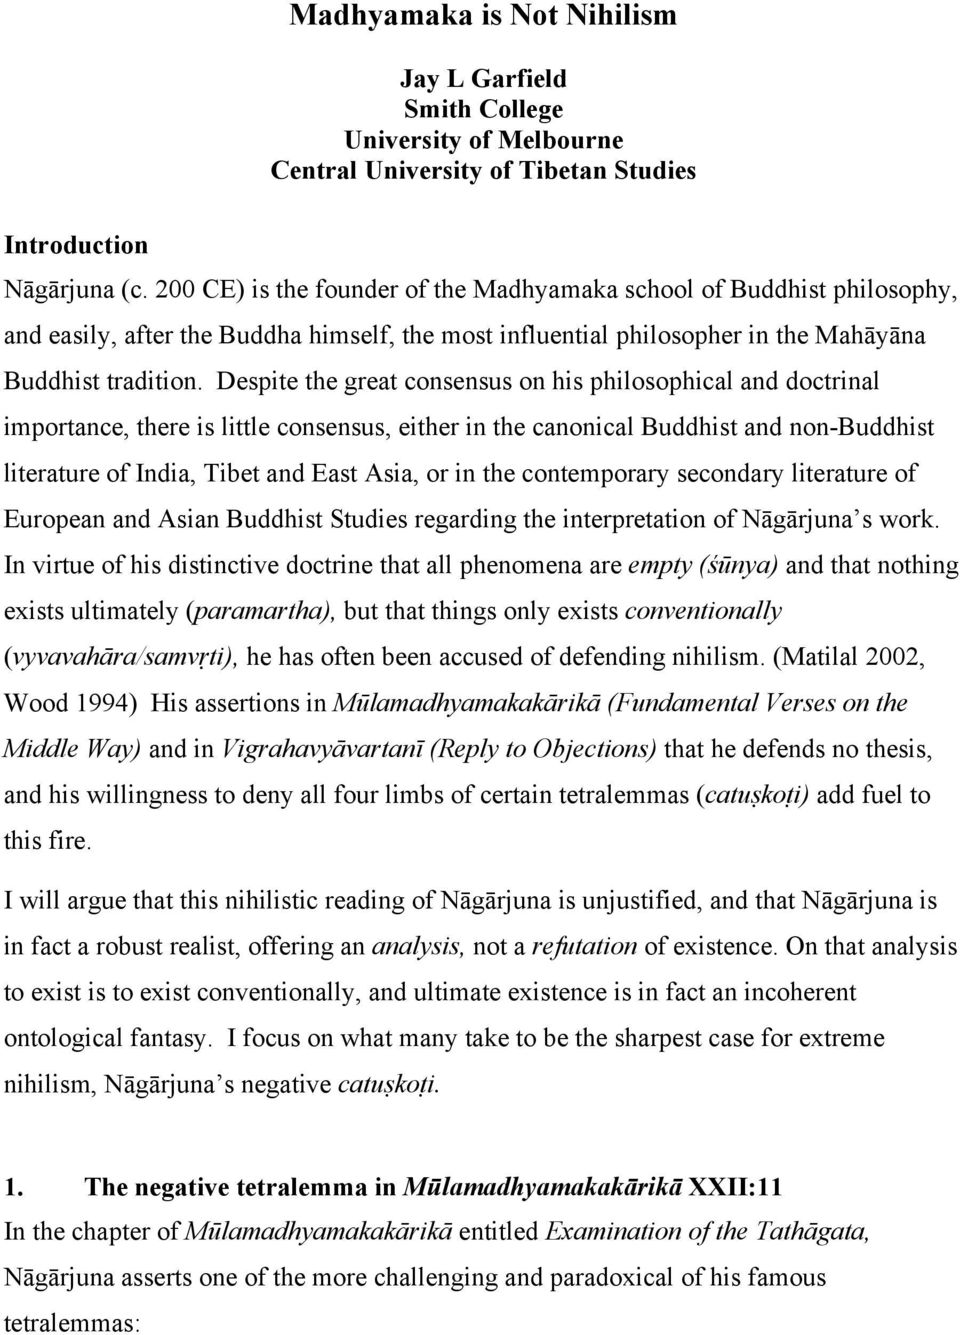 Despite the great consensus on his philosophical and doctrinal importance, there is little consensus, either in the canonical Buddhist and non-buddhist literature of India, Tibet and East Asia, or in